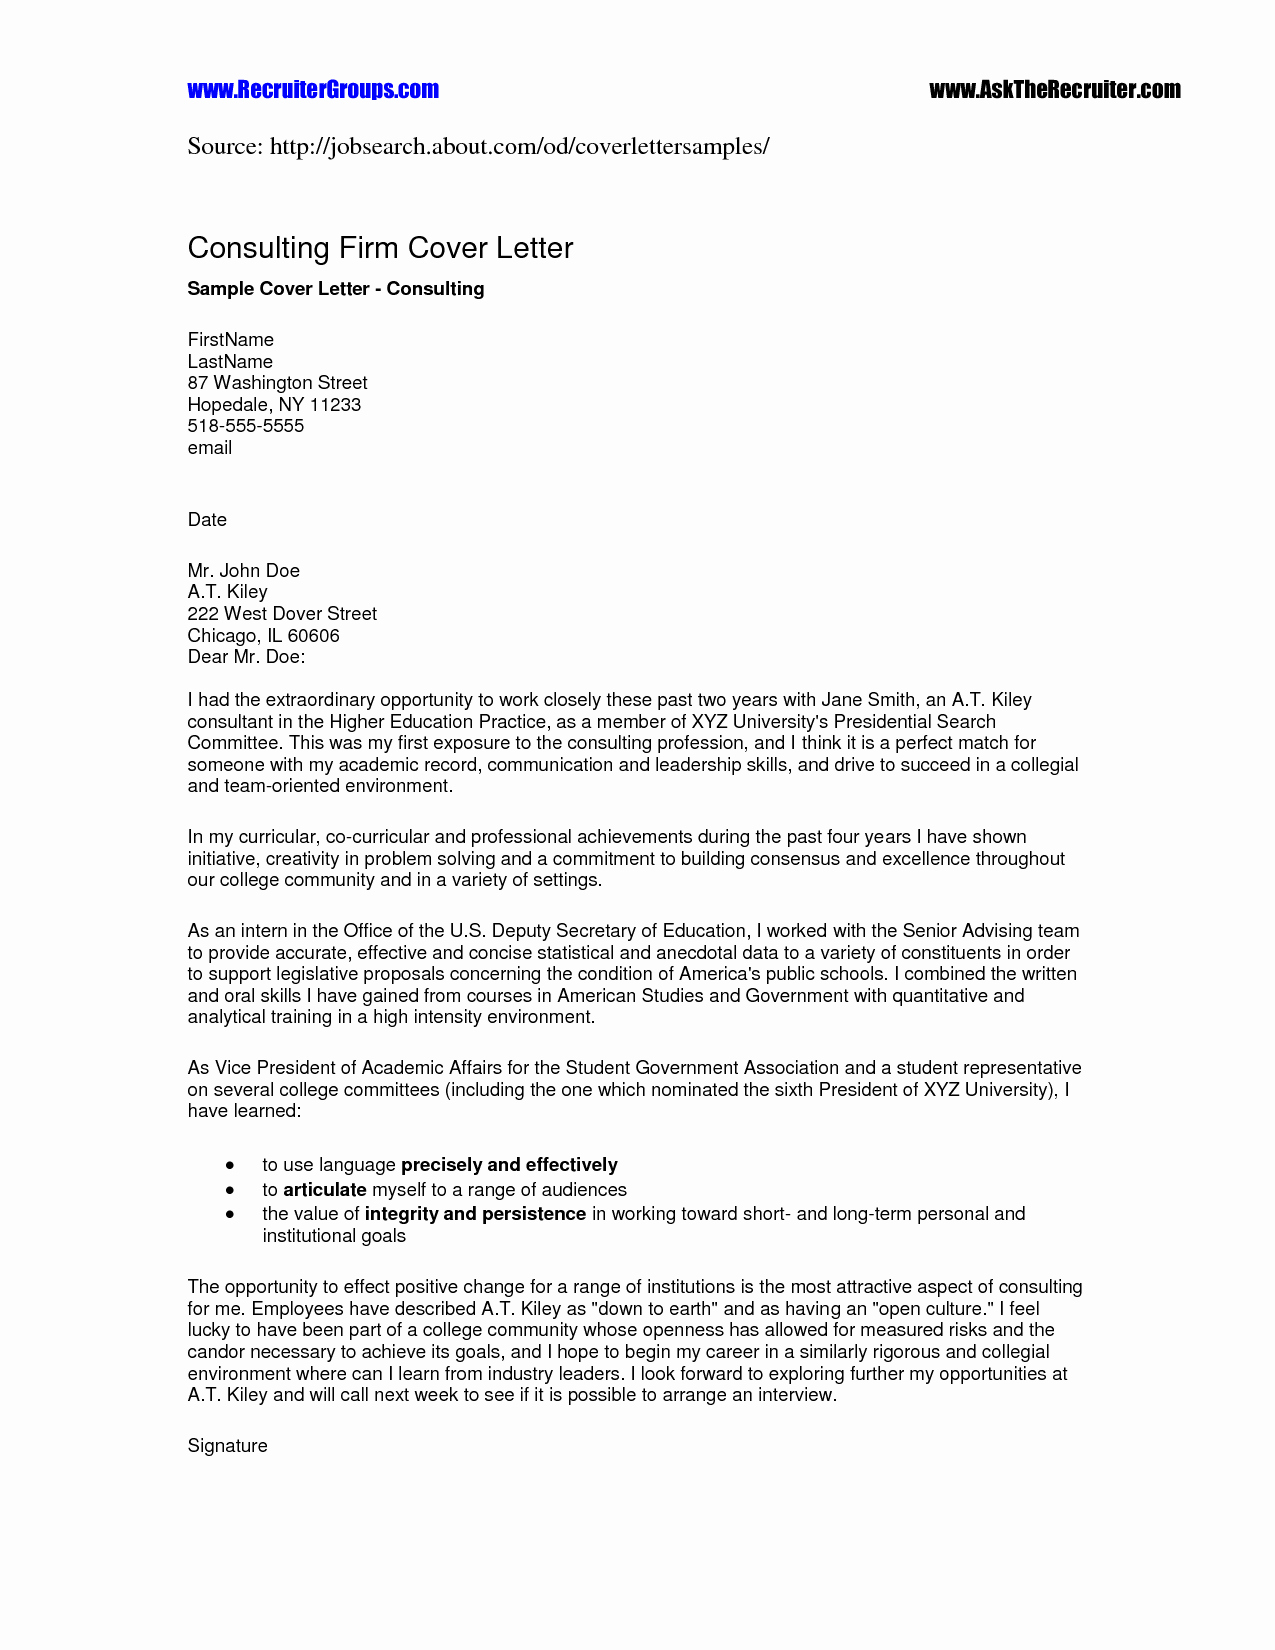 cover letter examples for hvac technician - Maco.palmex.co